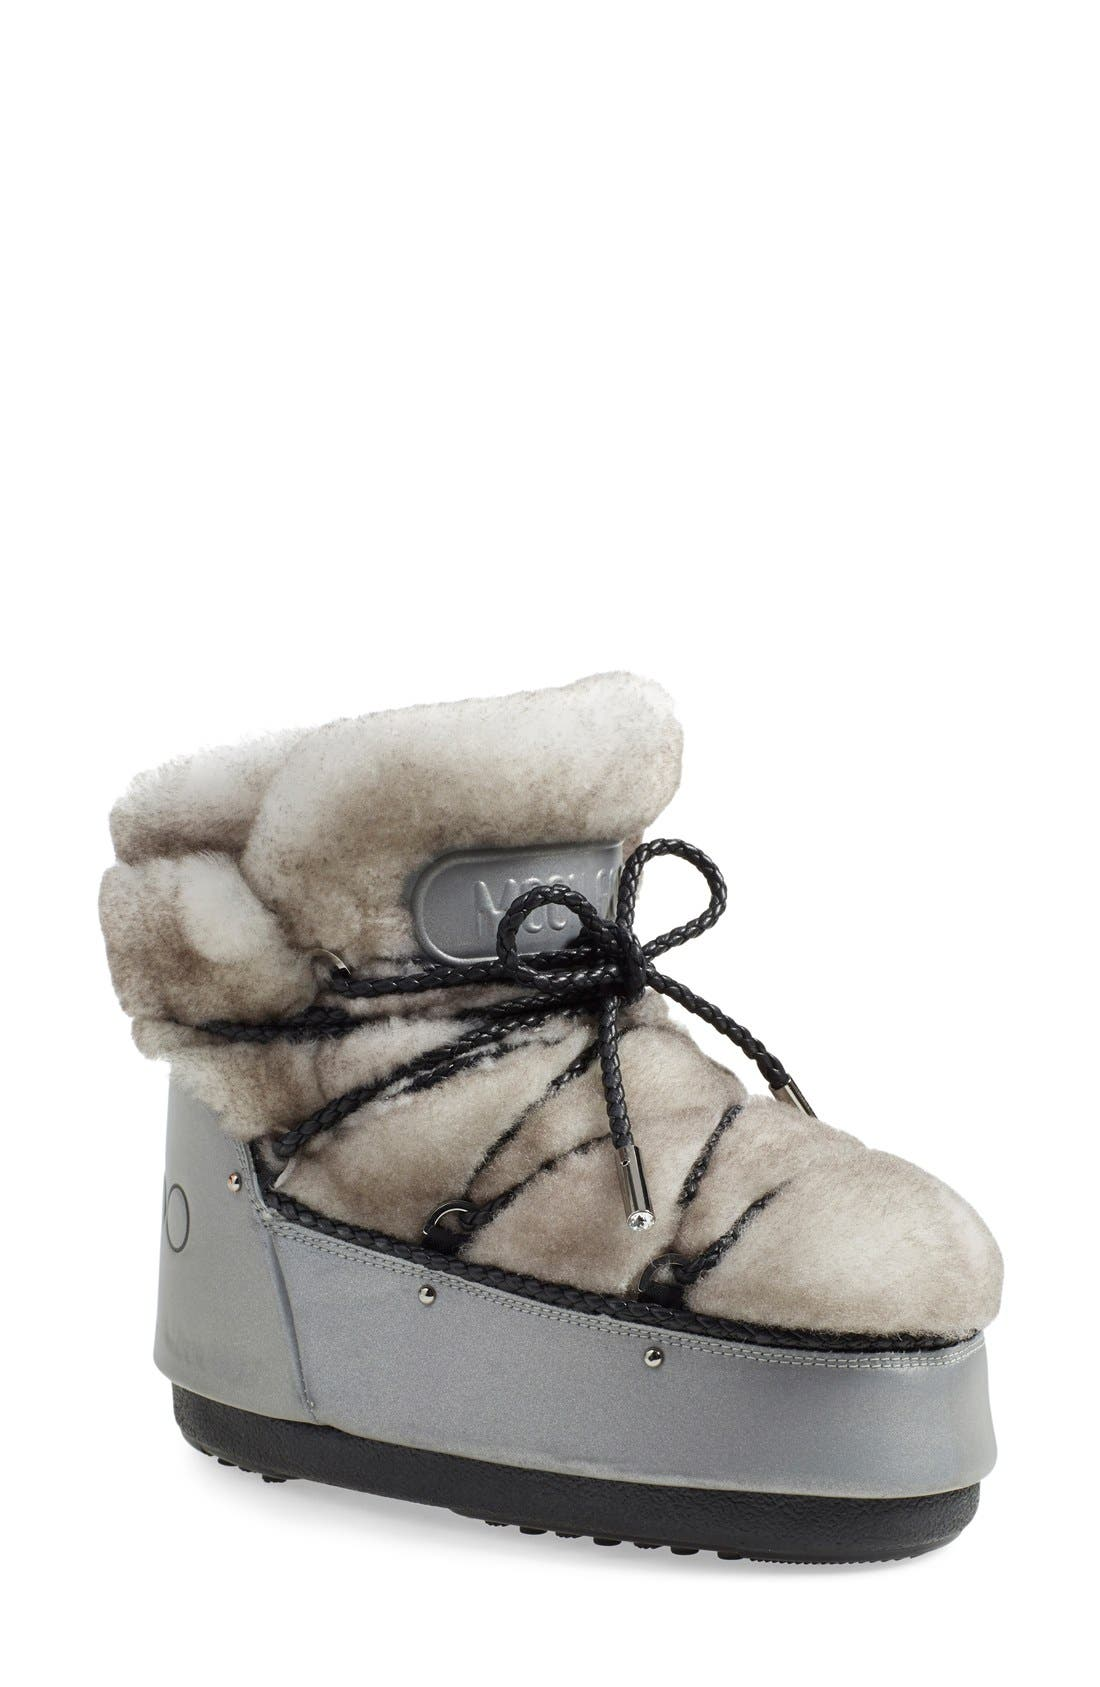 Main Image - Jimmy Choo Genuine Shearling Moon Boot® (Women)